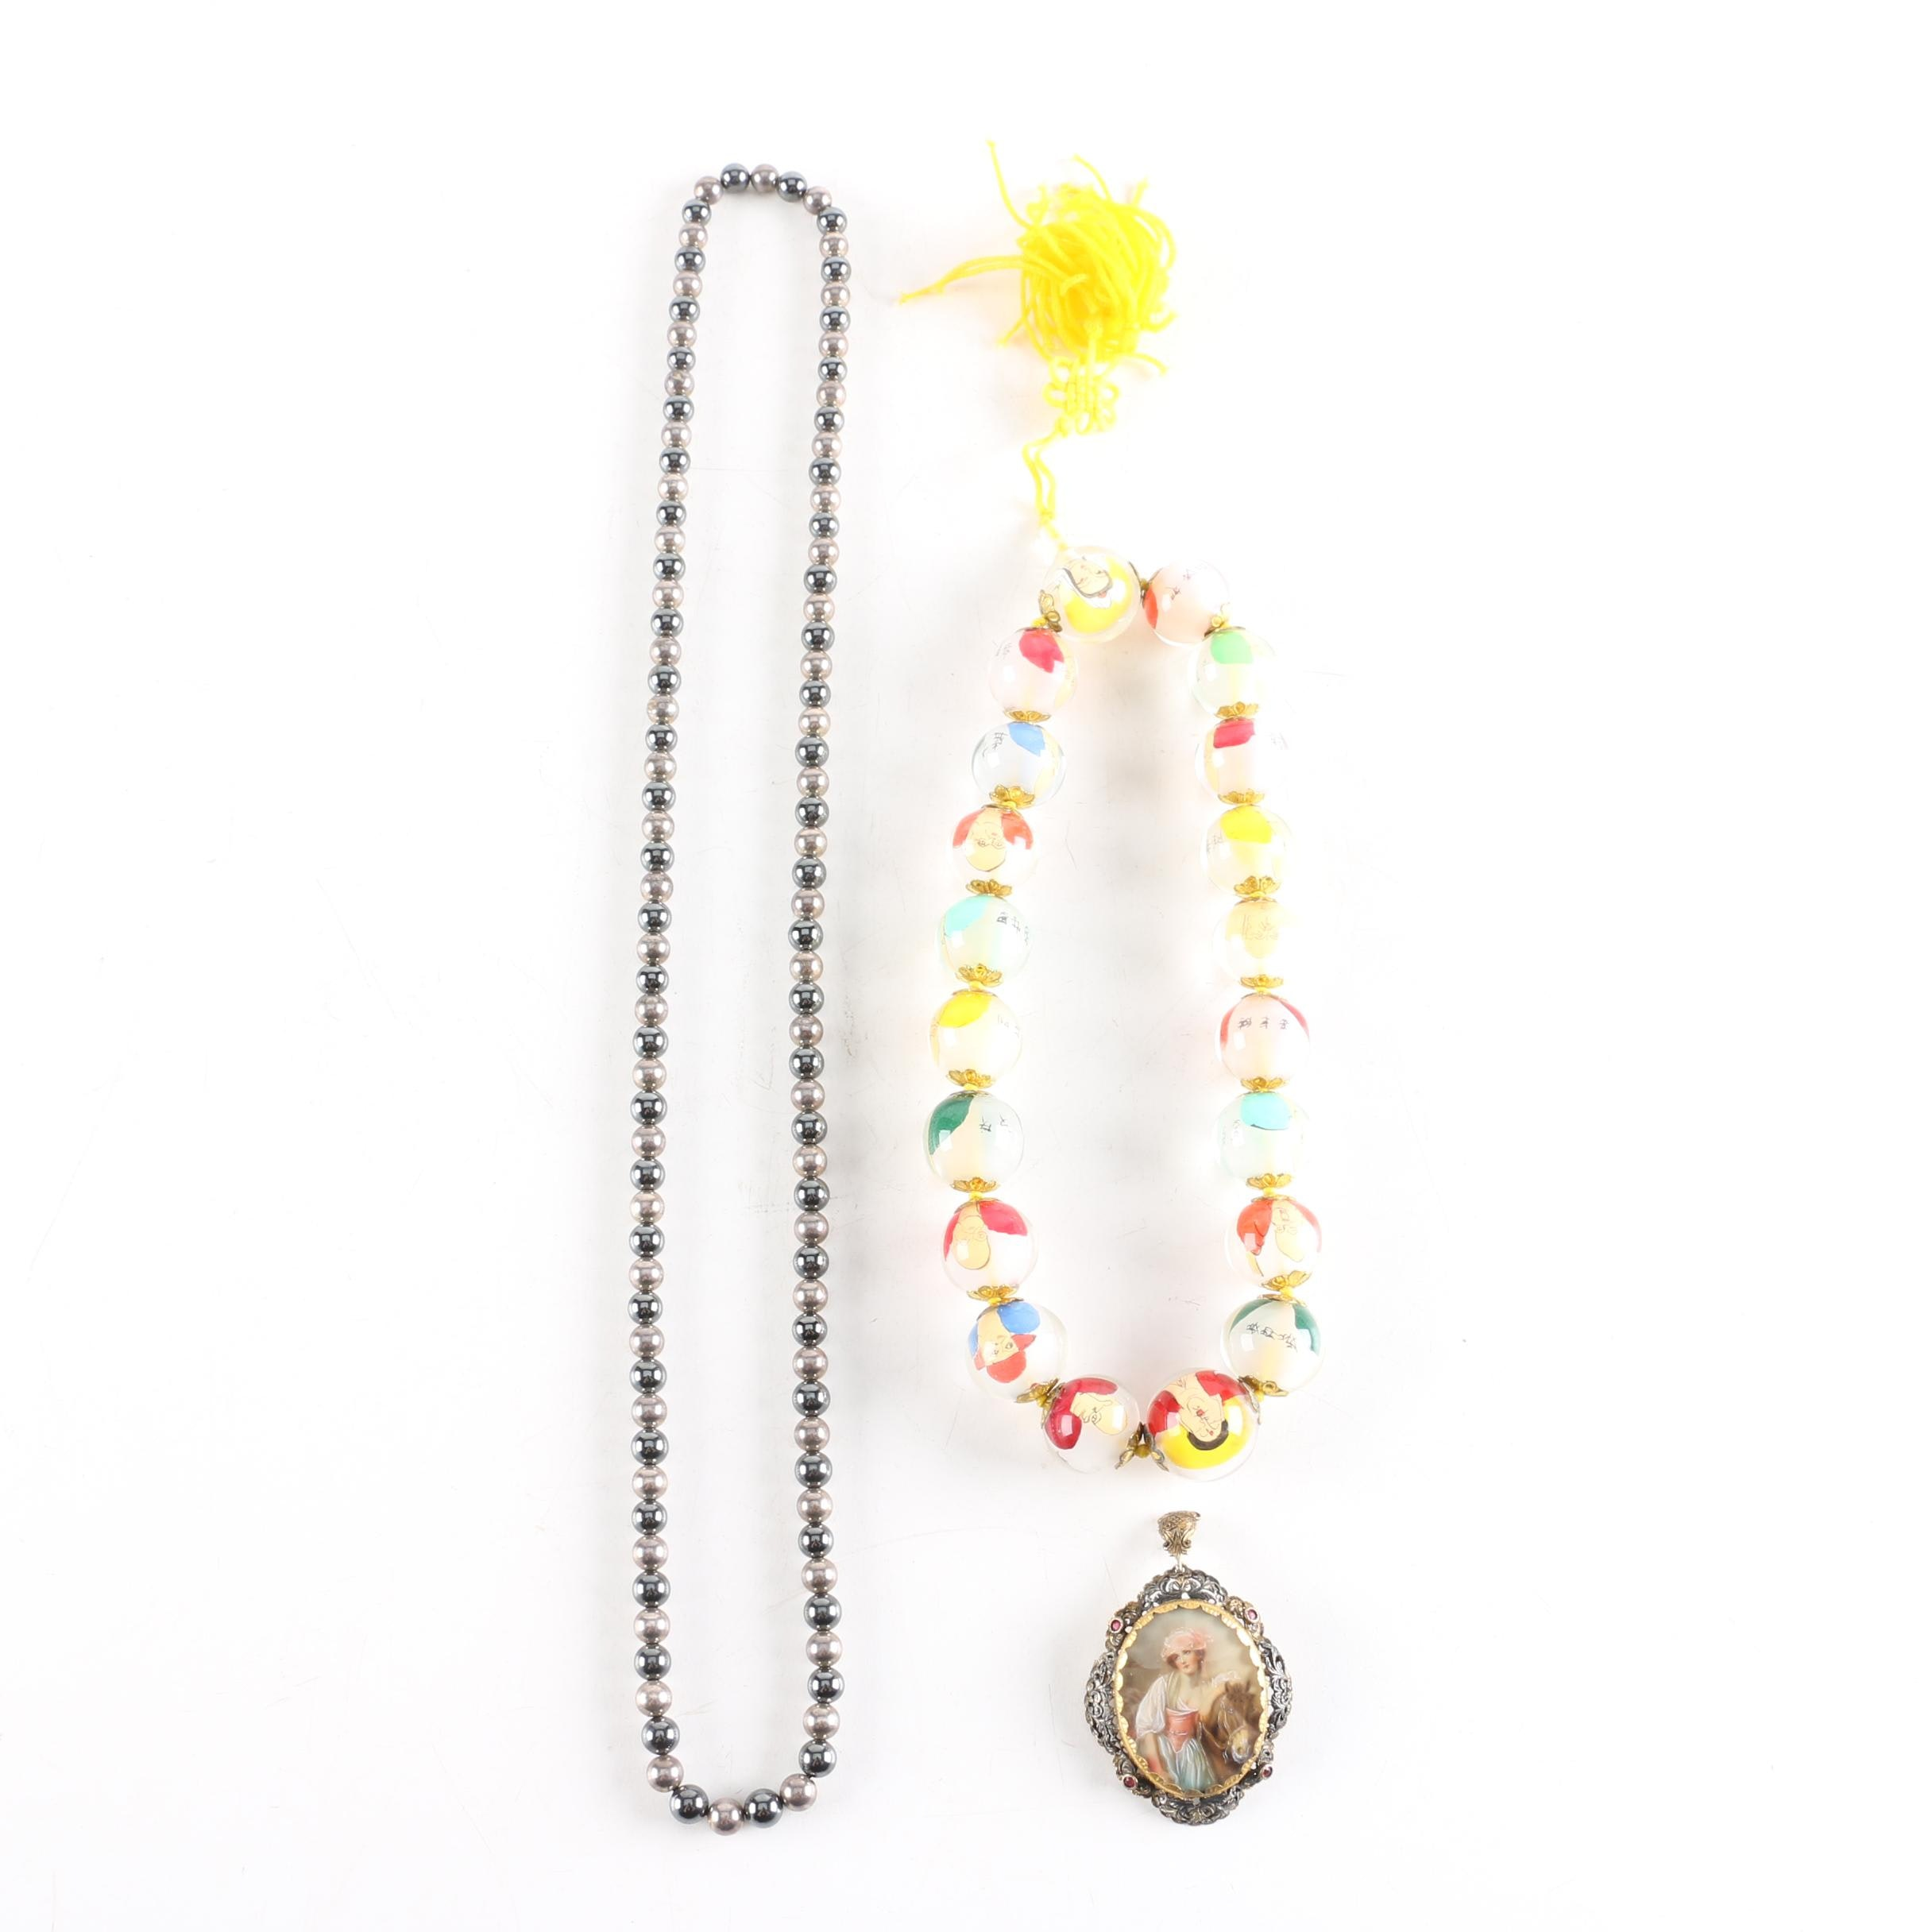 Costume Jewelry Including Reverse Painted Chinese Prayer Beads